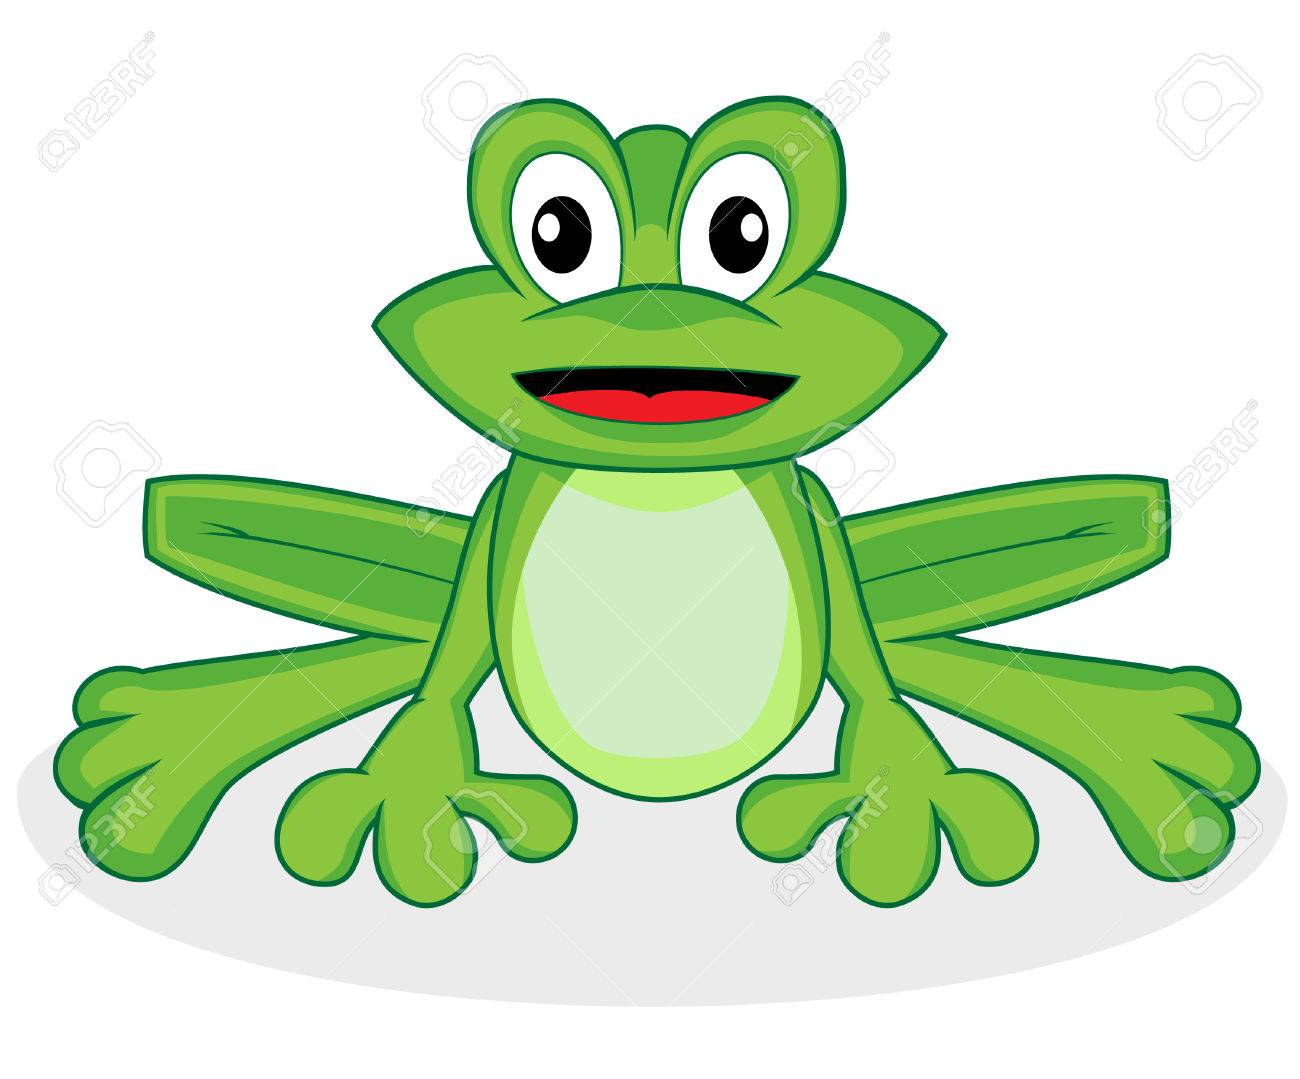 cute happy looking tiny green frog with big eyes royalty free